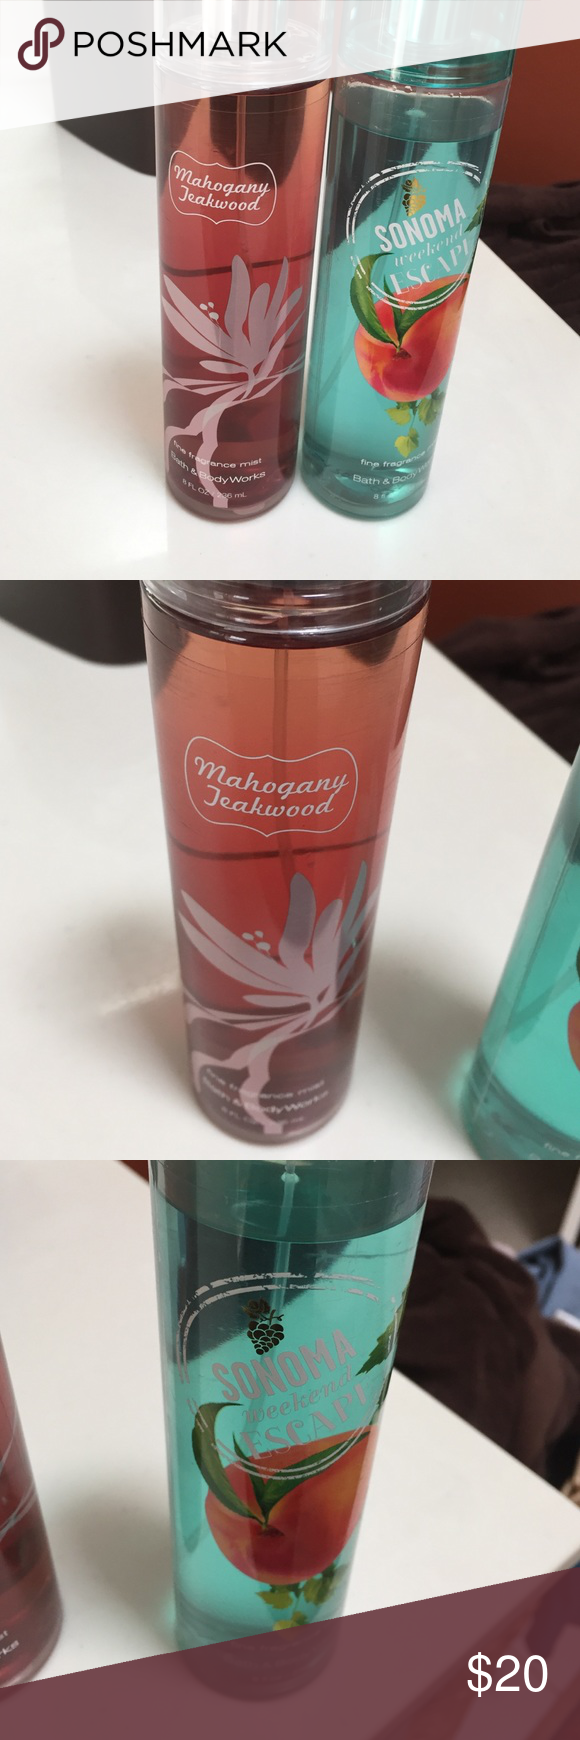 2 B&BW perfumes 2 full size Bath & Body Works perfumes. Mahogany Teakwood is completely full and Sonoma Weekend Escape have been slightly used💜$30 value📦bundle to save📦 PINK Victoria's Secret Other